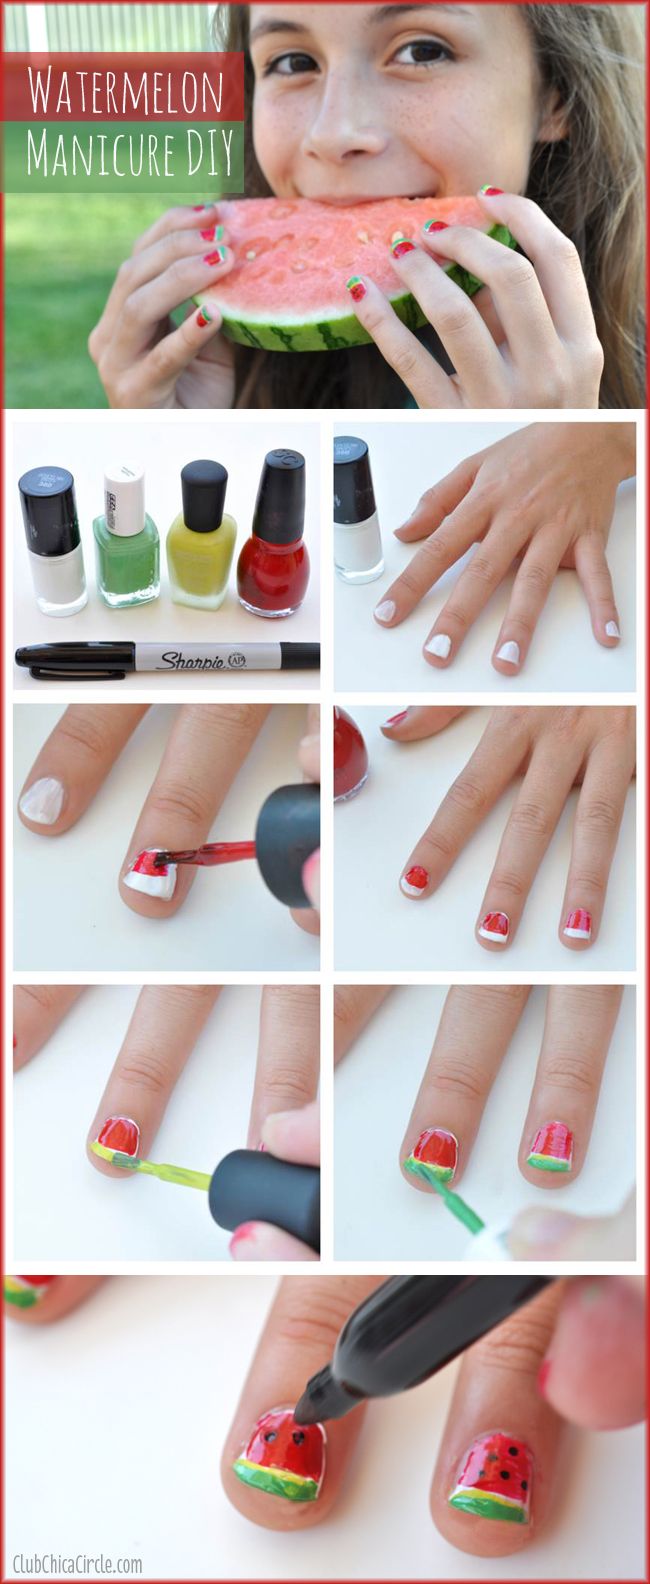 Watermelon Manicure Easy DIY for Tweens